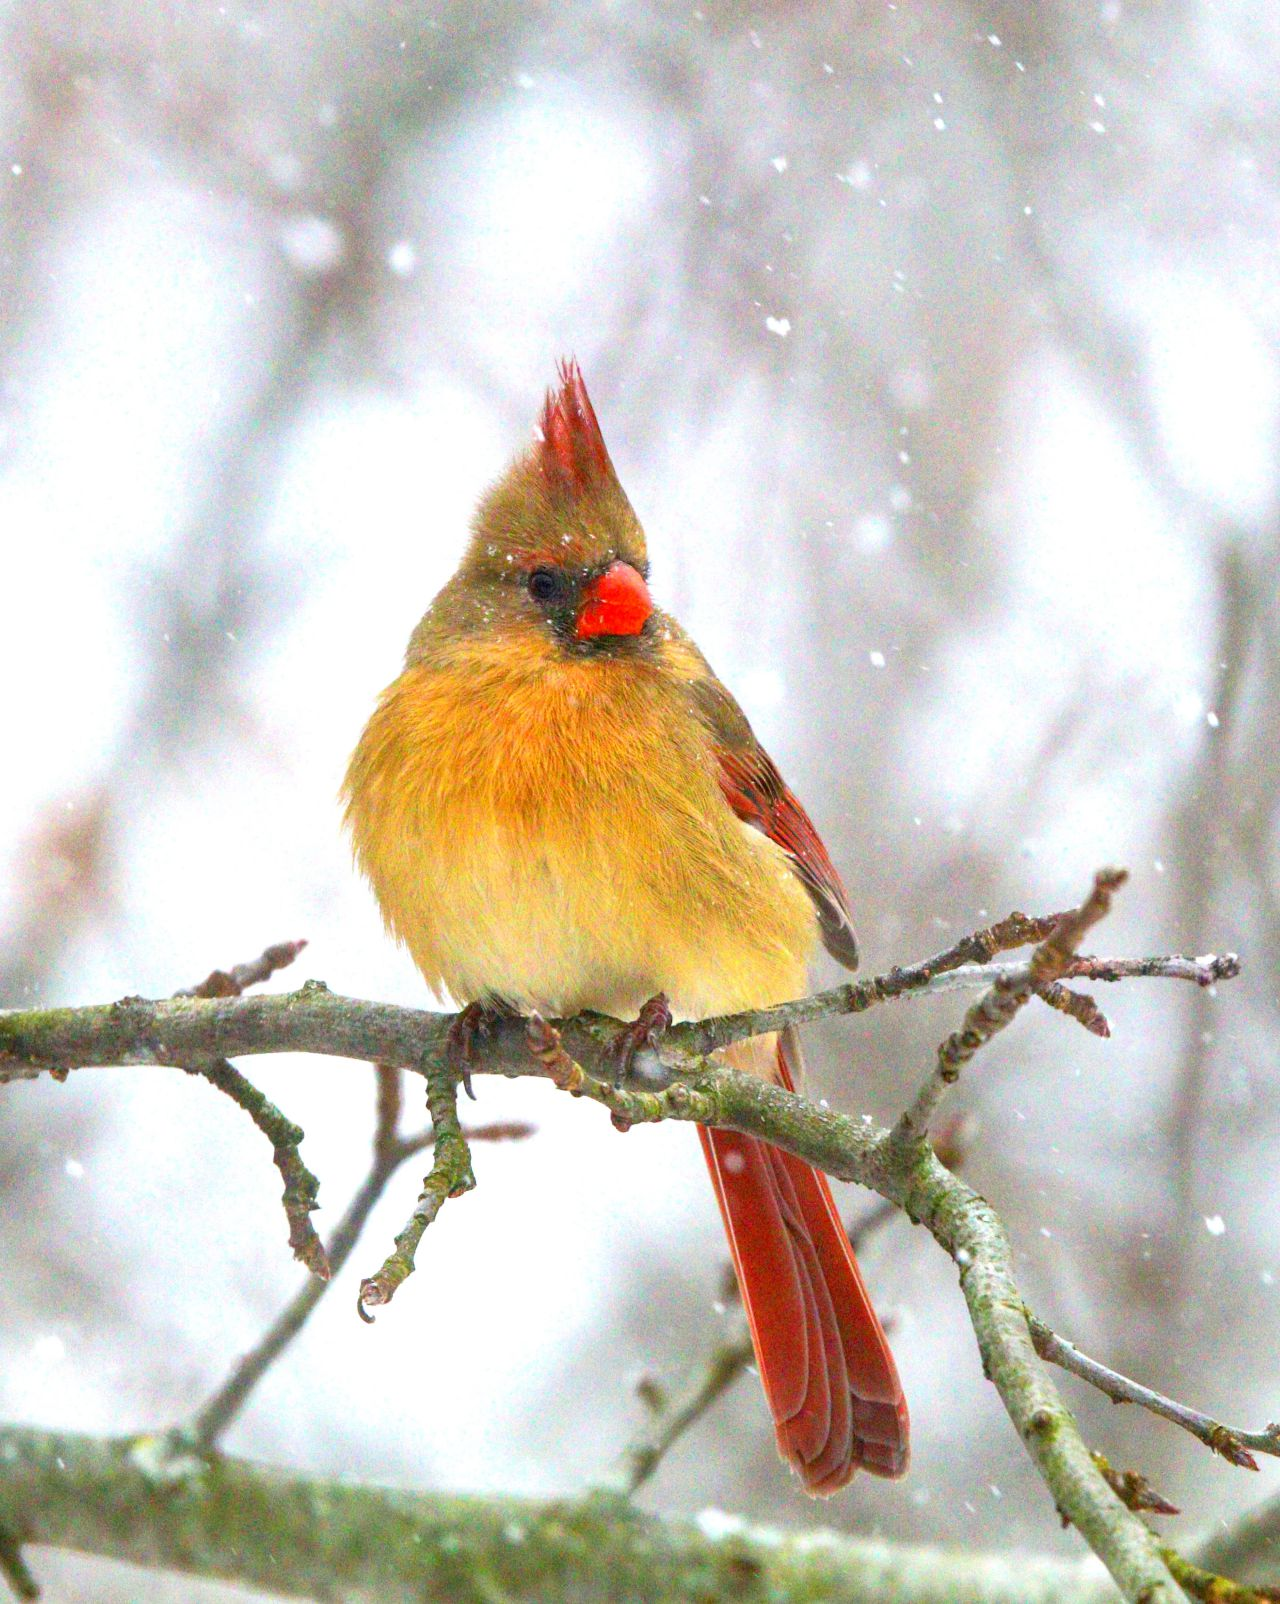 Female cardinal peering into the snow (photo)